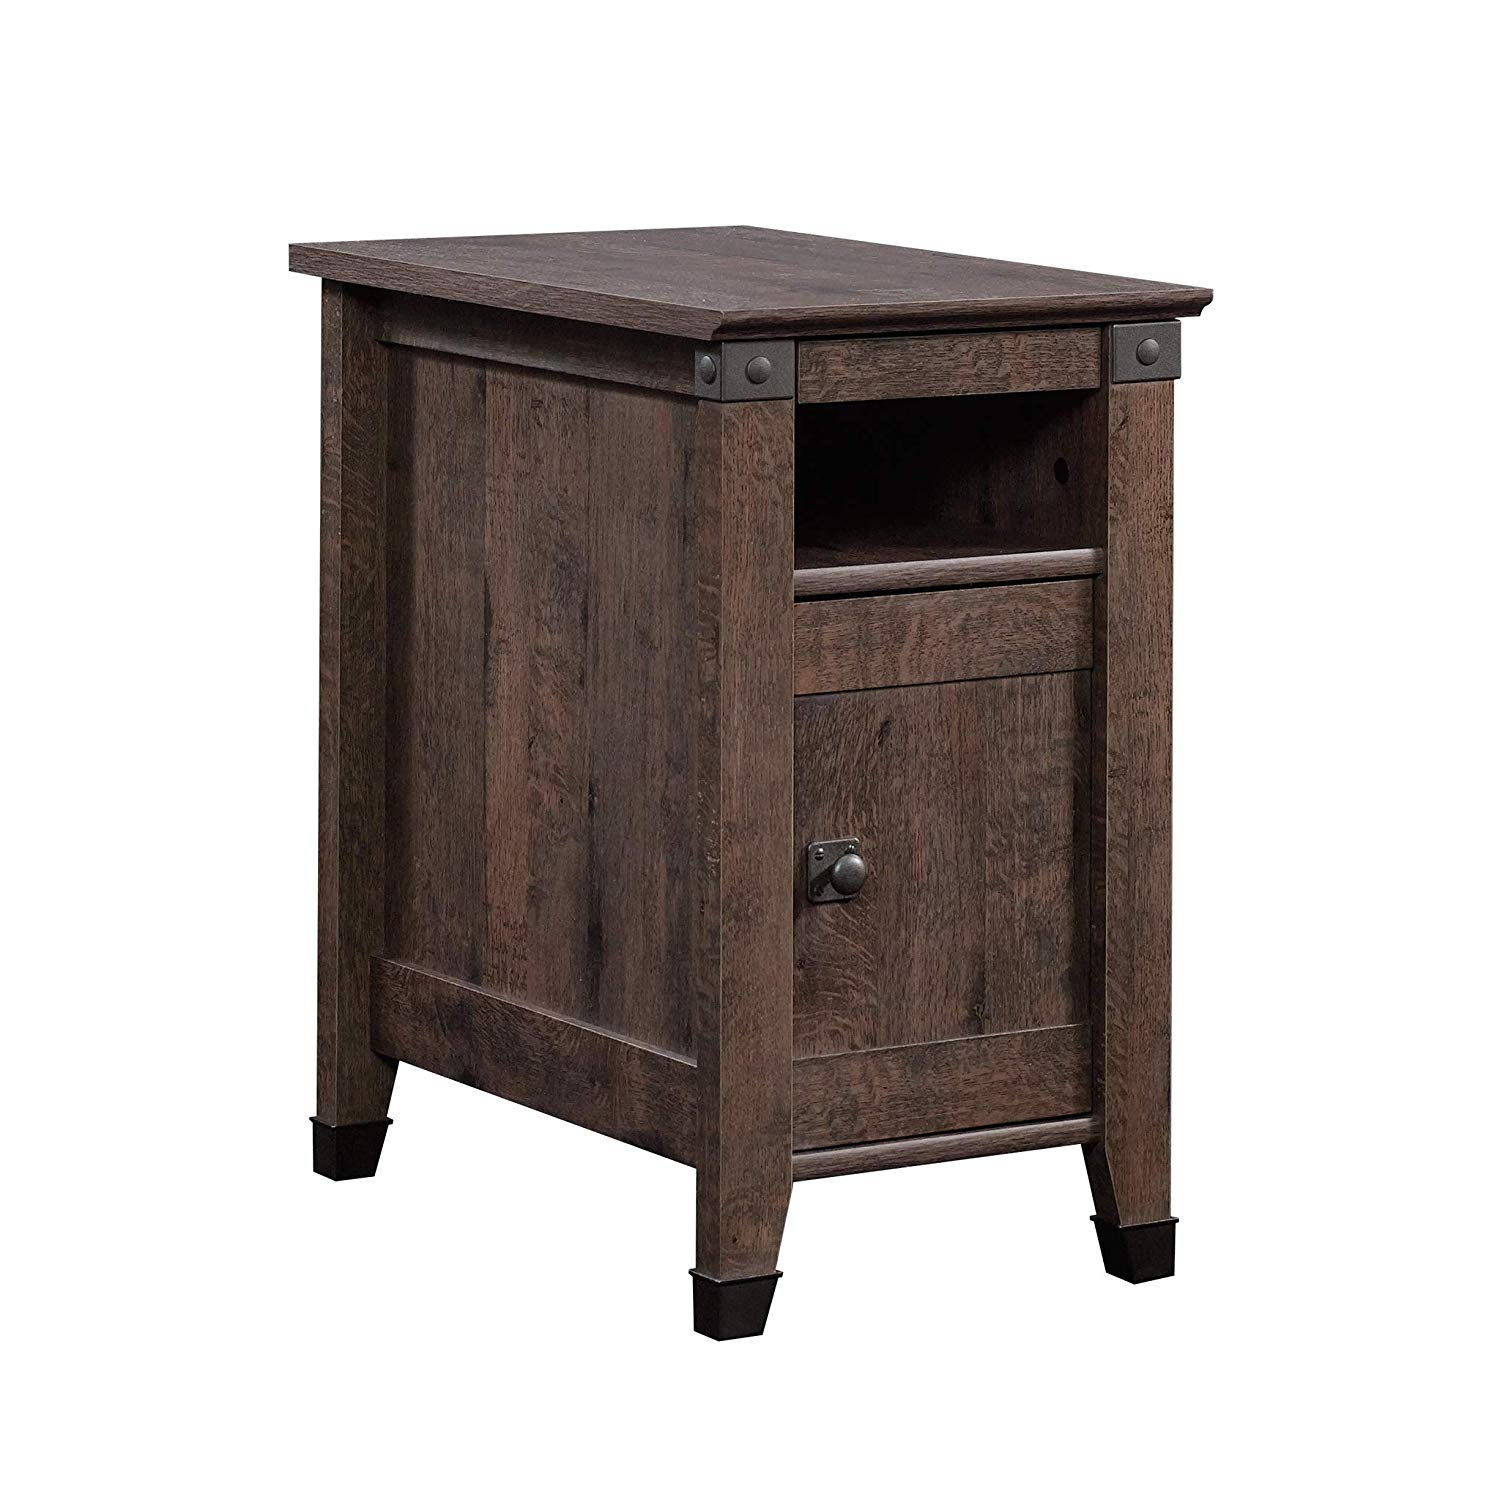 sauder carson forge side table leick corner accent coffee oak finish kitchen dining sage green rose gold skinny wine rack argos tall end mirrored with storage round drop leaf set